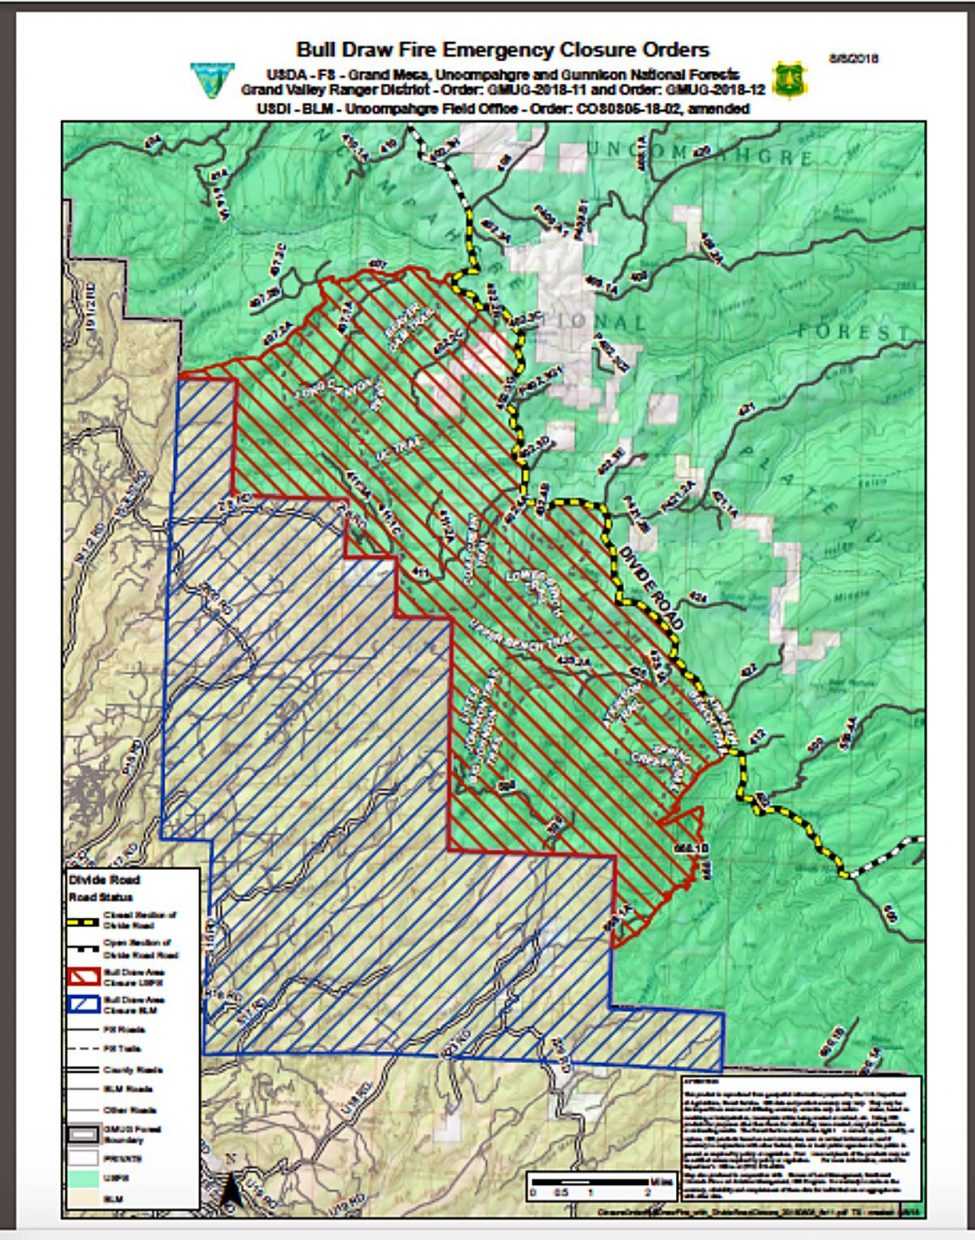 Fires Colorado Map.Colorado S Bull Draw Fire Grows By 5 000 Acres Thefencepost Com